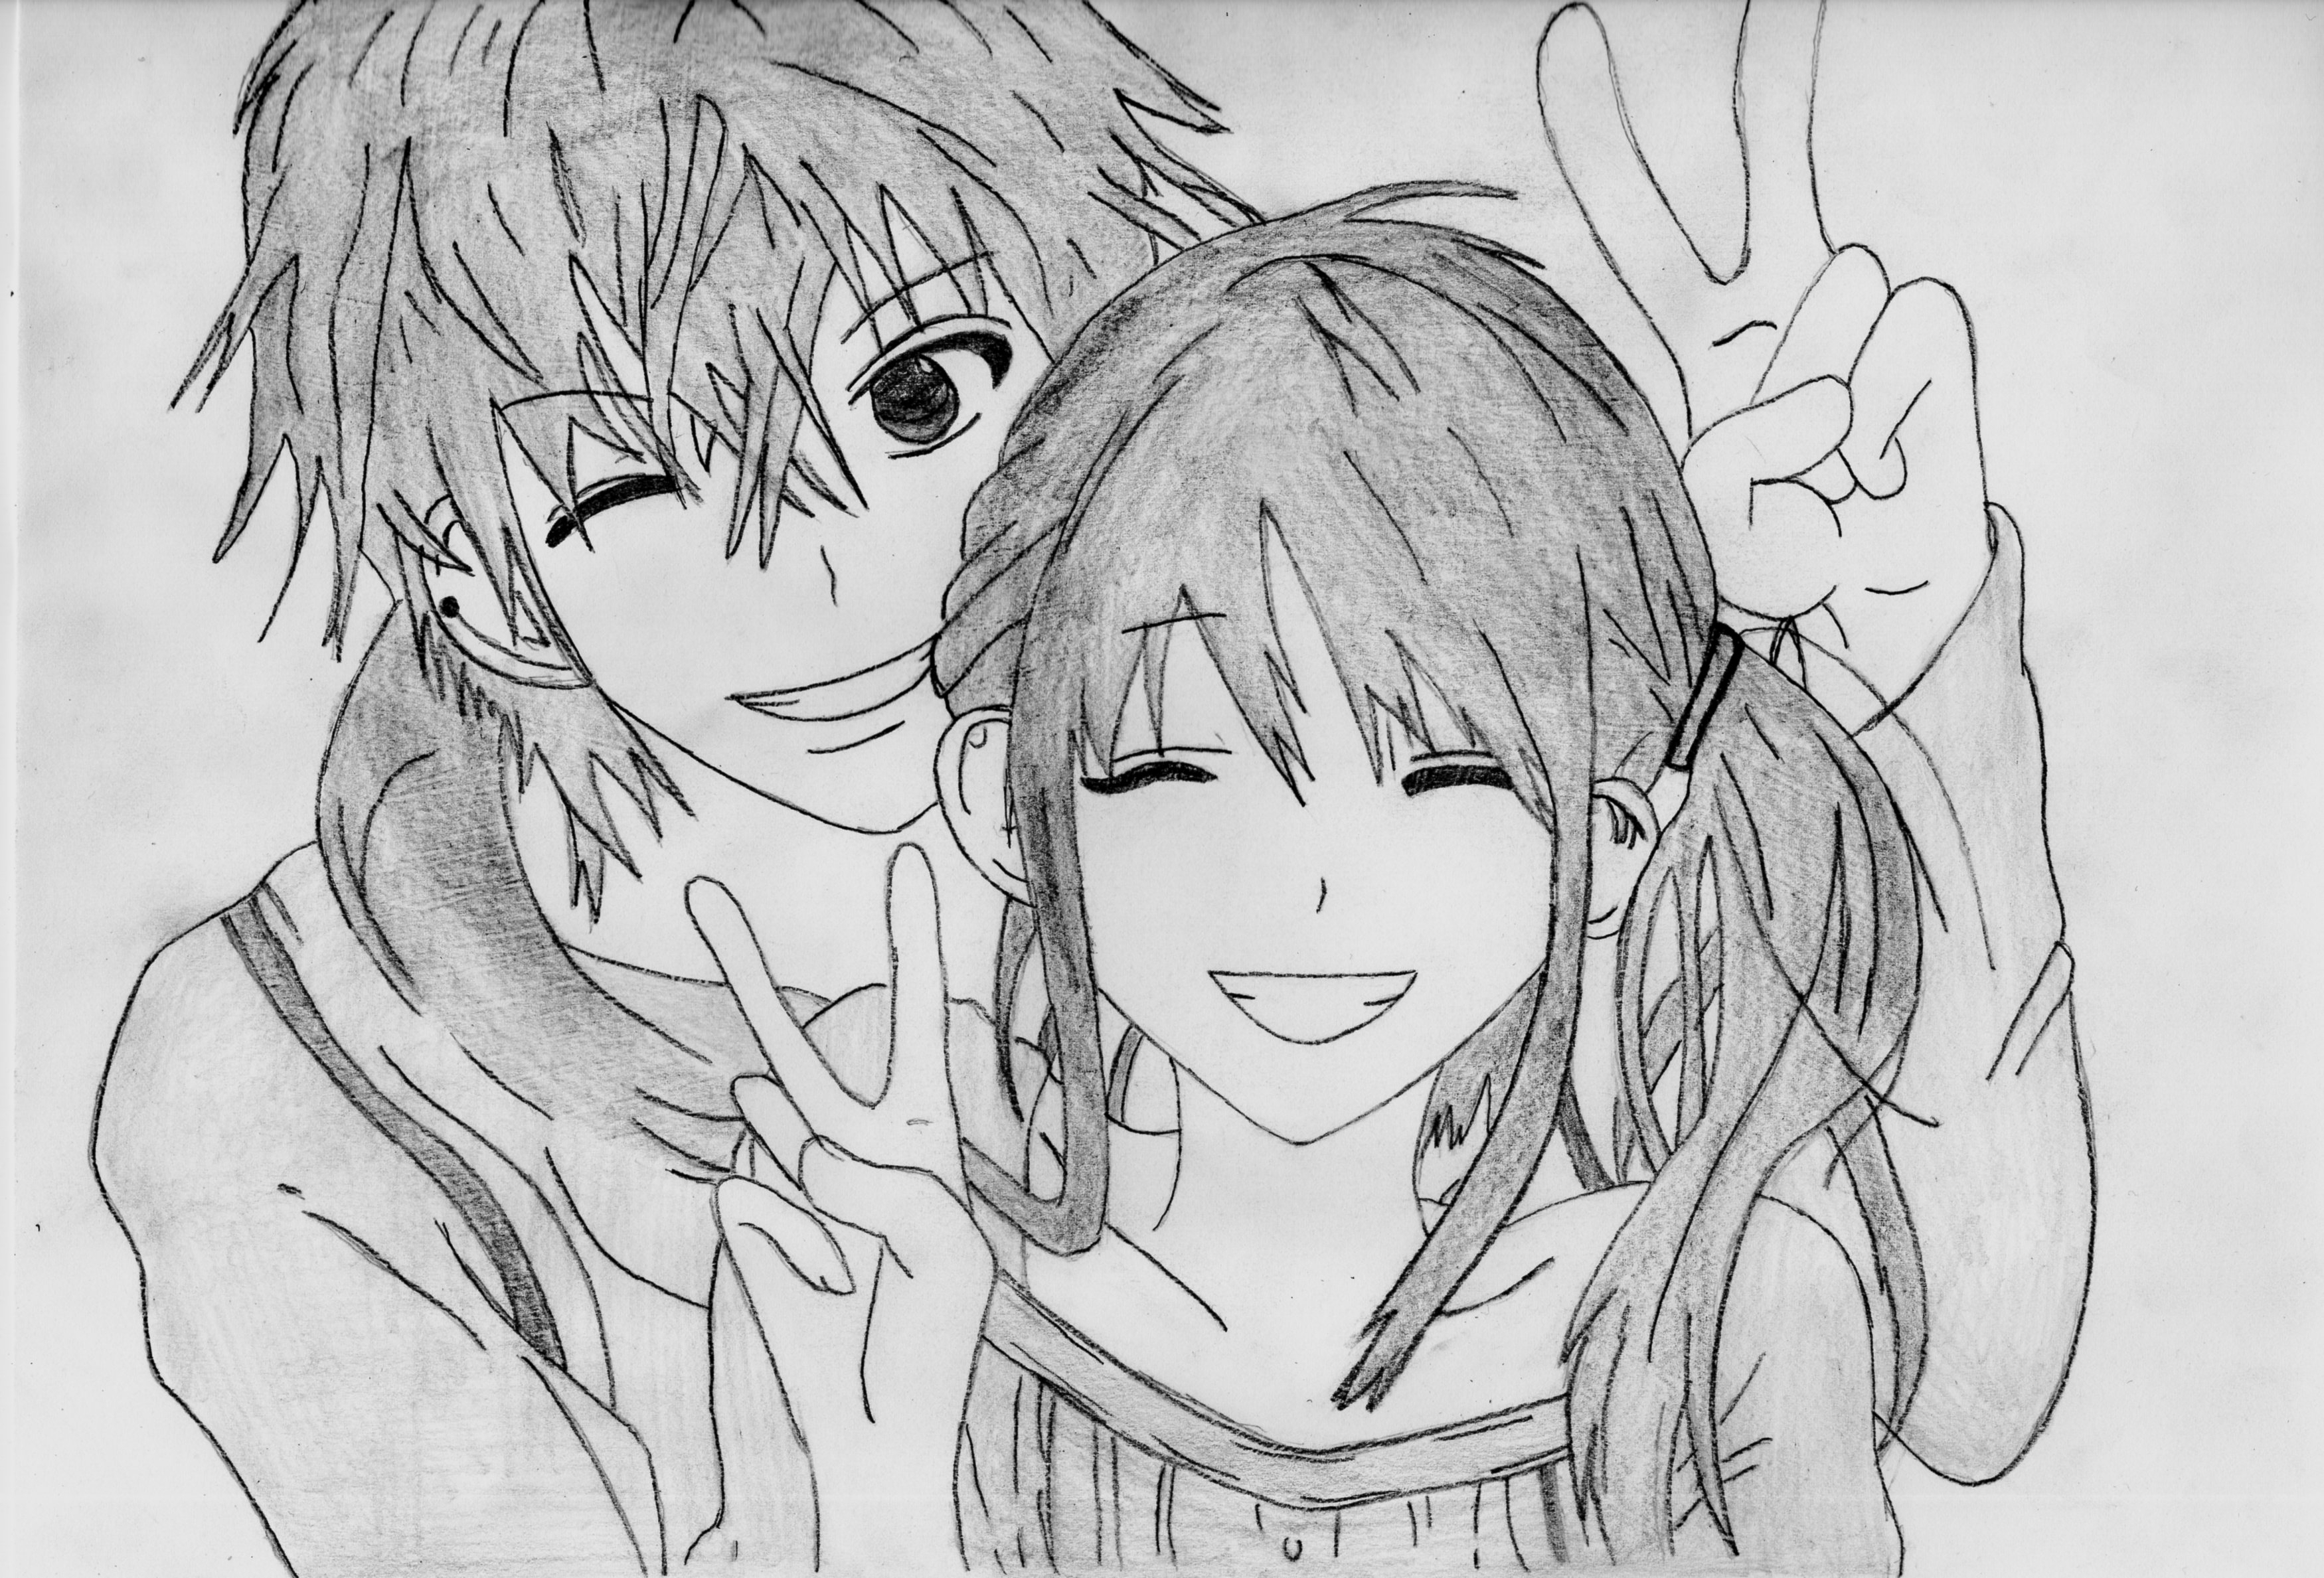 Drawn kisses cute anime Drawings In Drawing Love Drawing